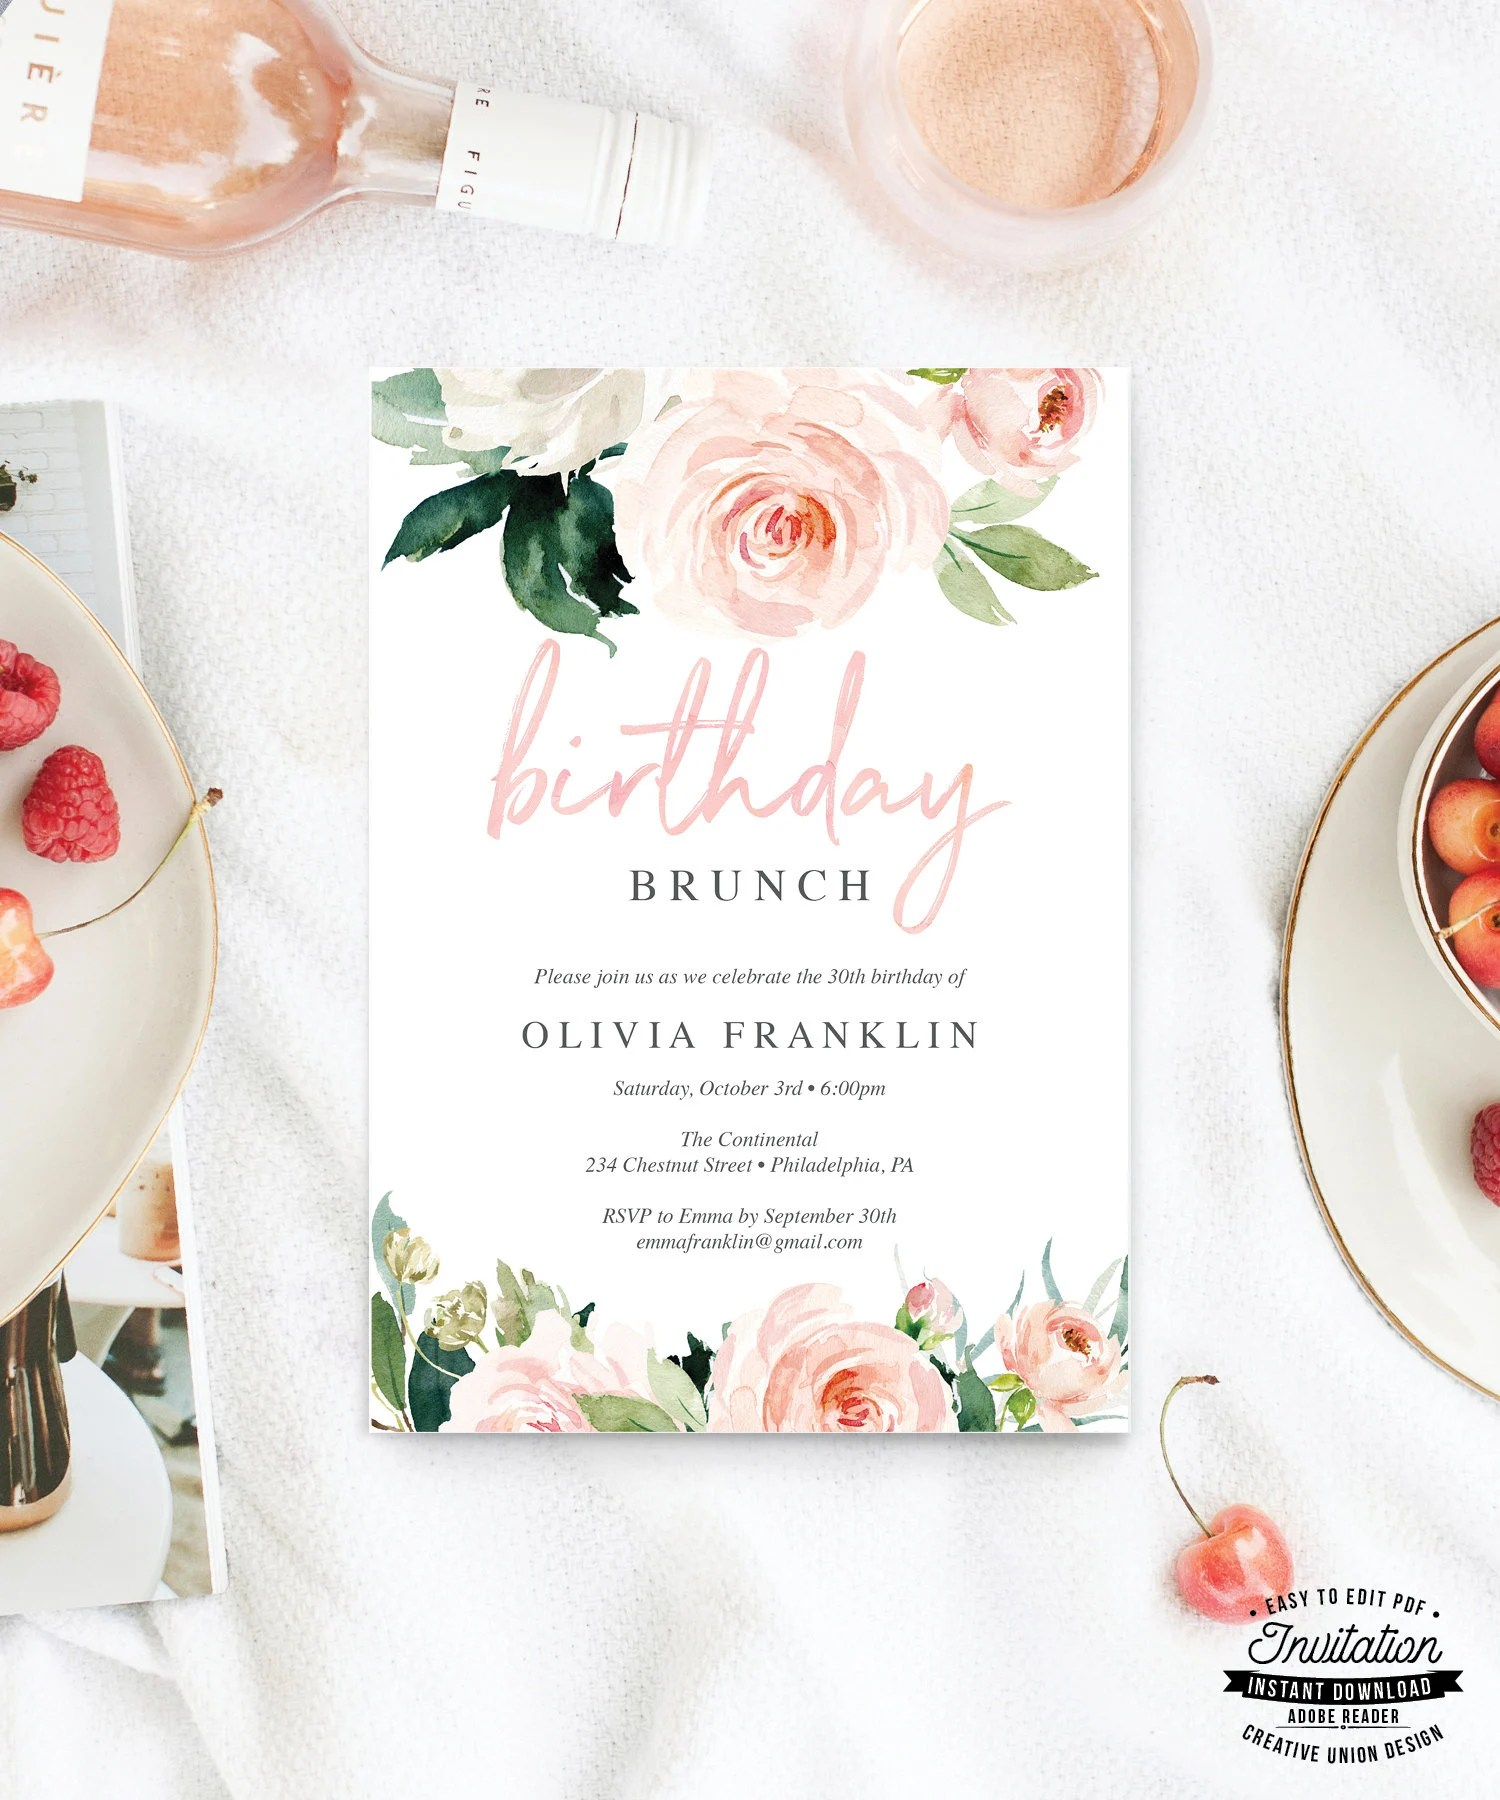 birthday brunch invitation for her 30th birthday invite printable birthday invitations editable birthday party invite airy blush